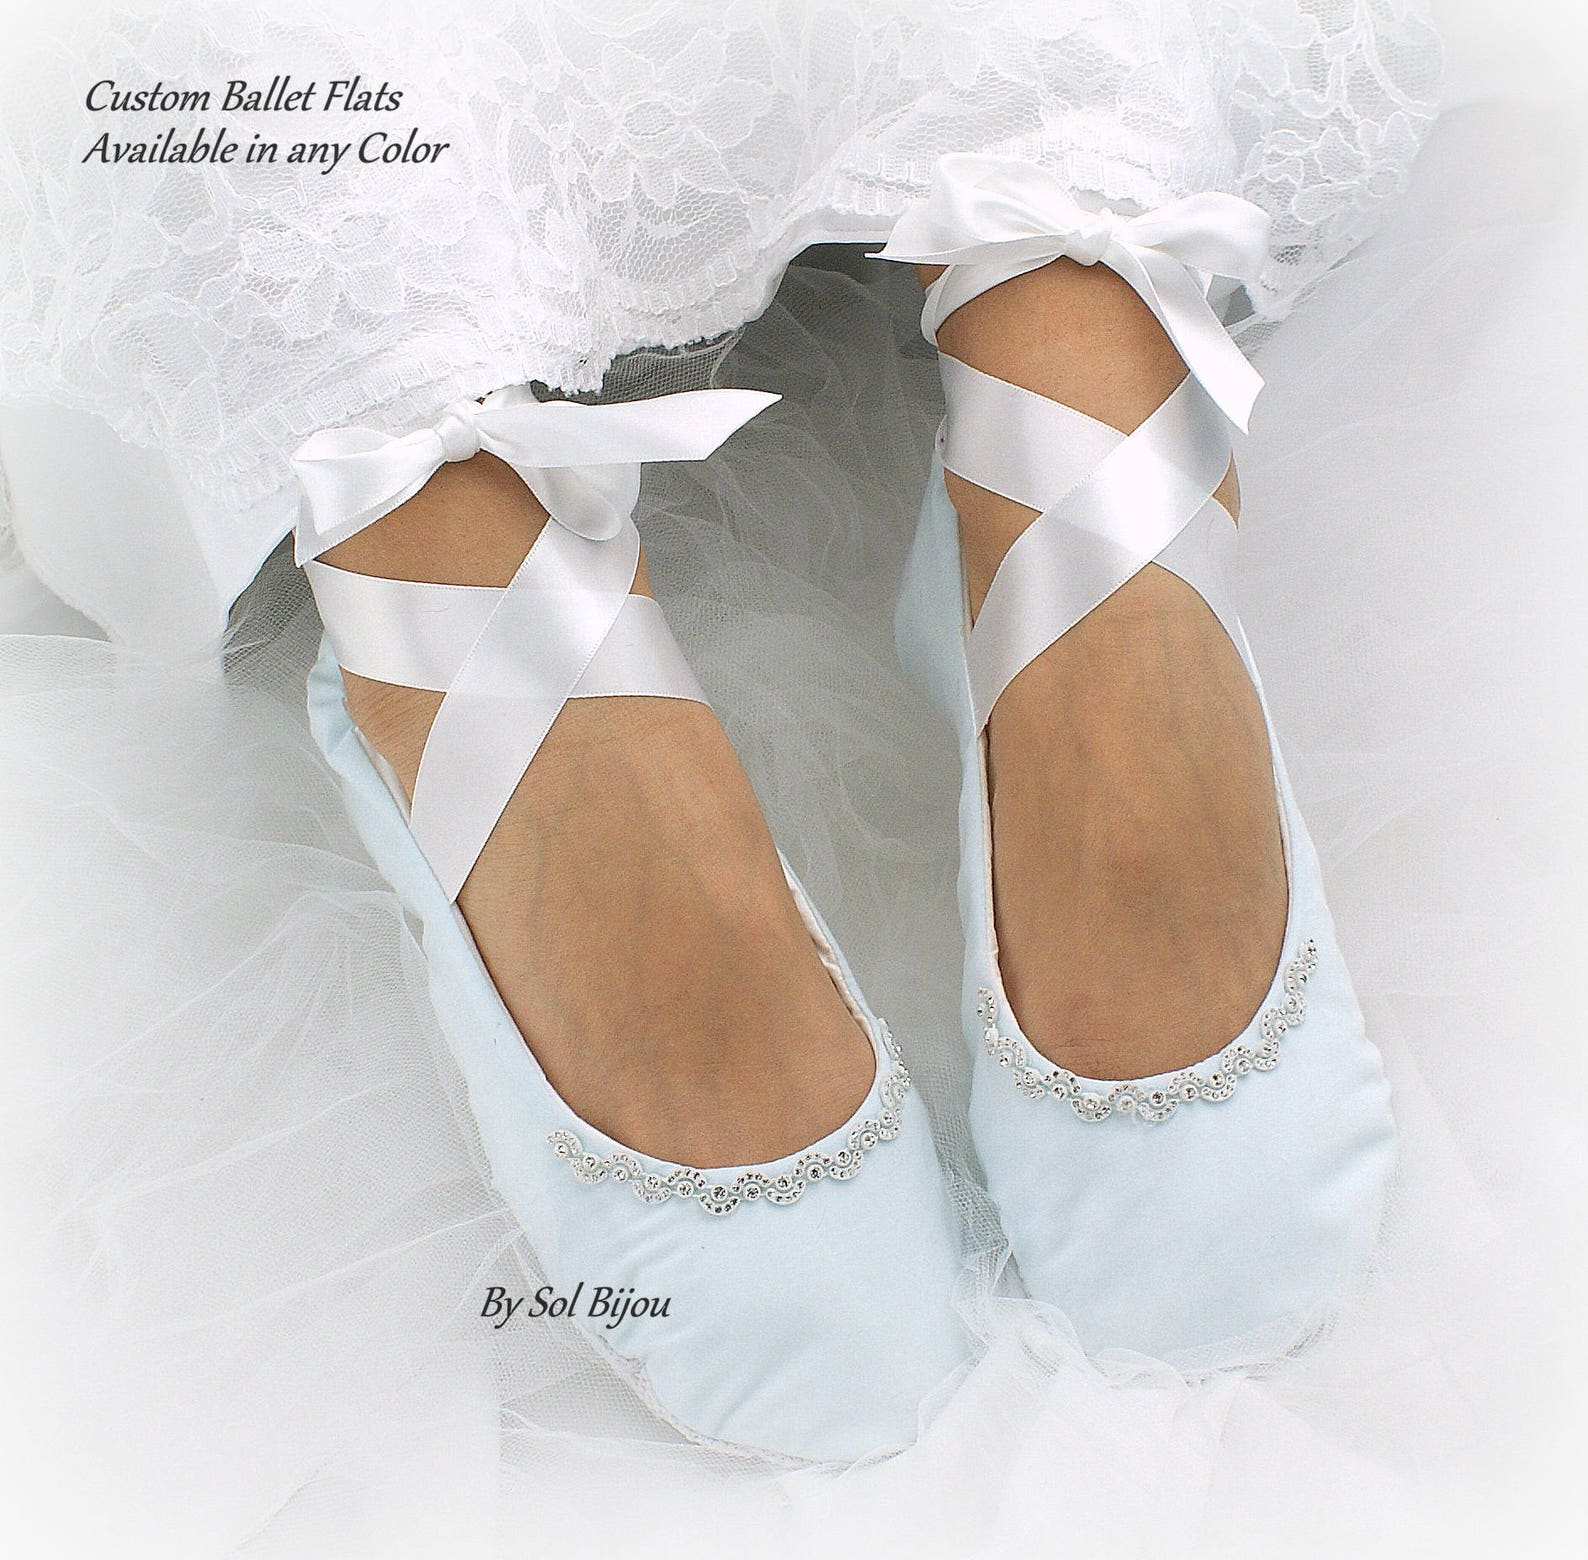 wedding ballet flats,ivory,light blue,something blue,ballet slippers,lace ballet flats,custom ballet flats,wedding flats,vintage